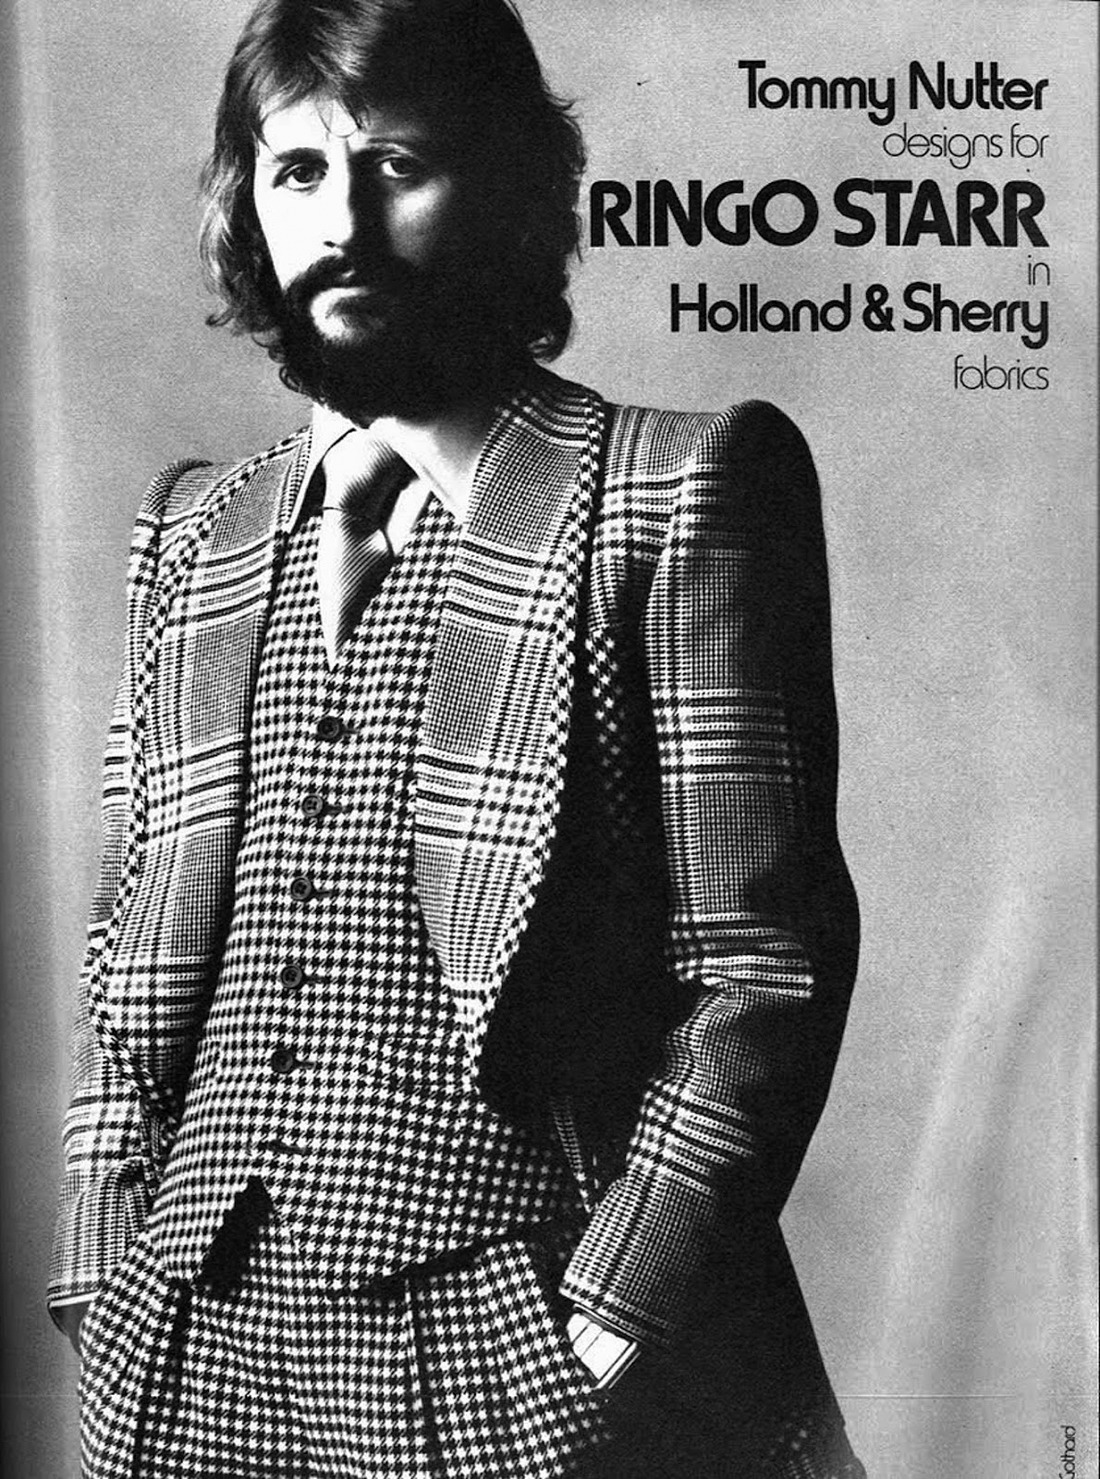 The Tommy Nutter Period. Ringo Starr.